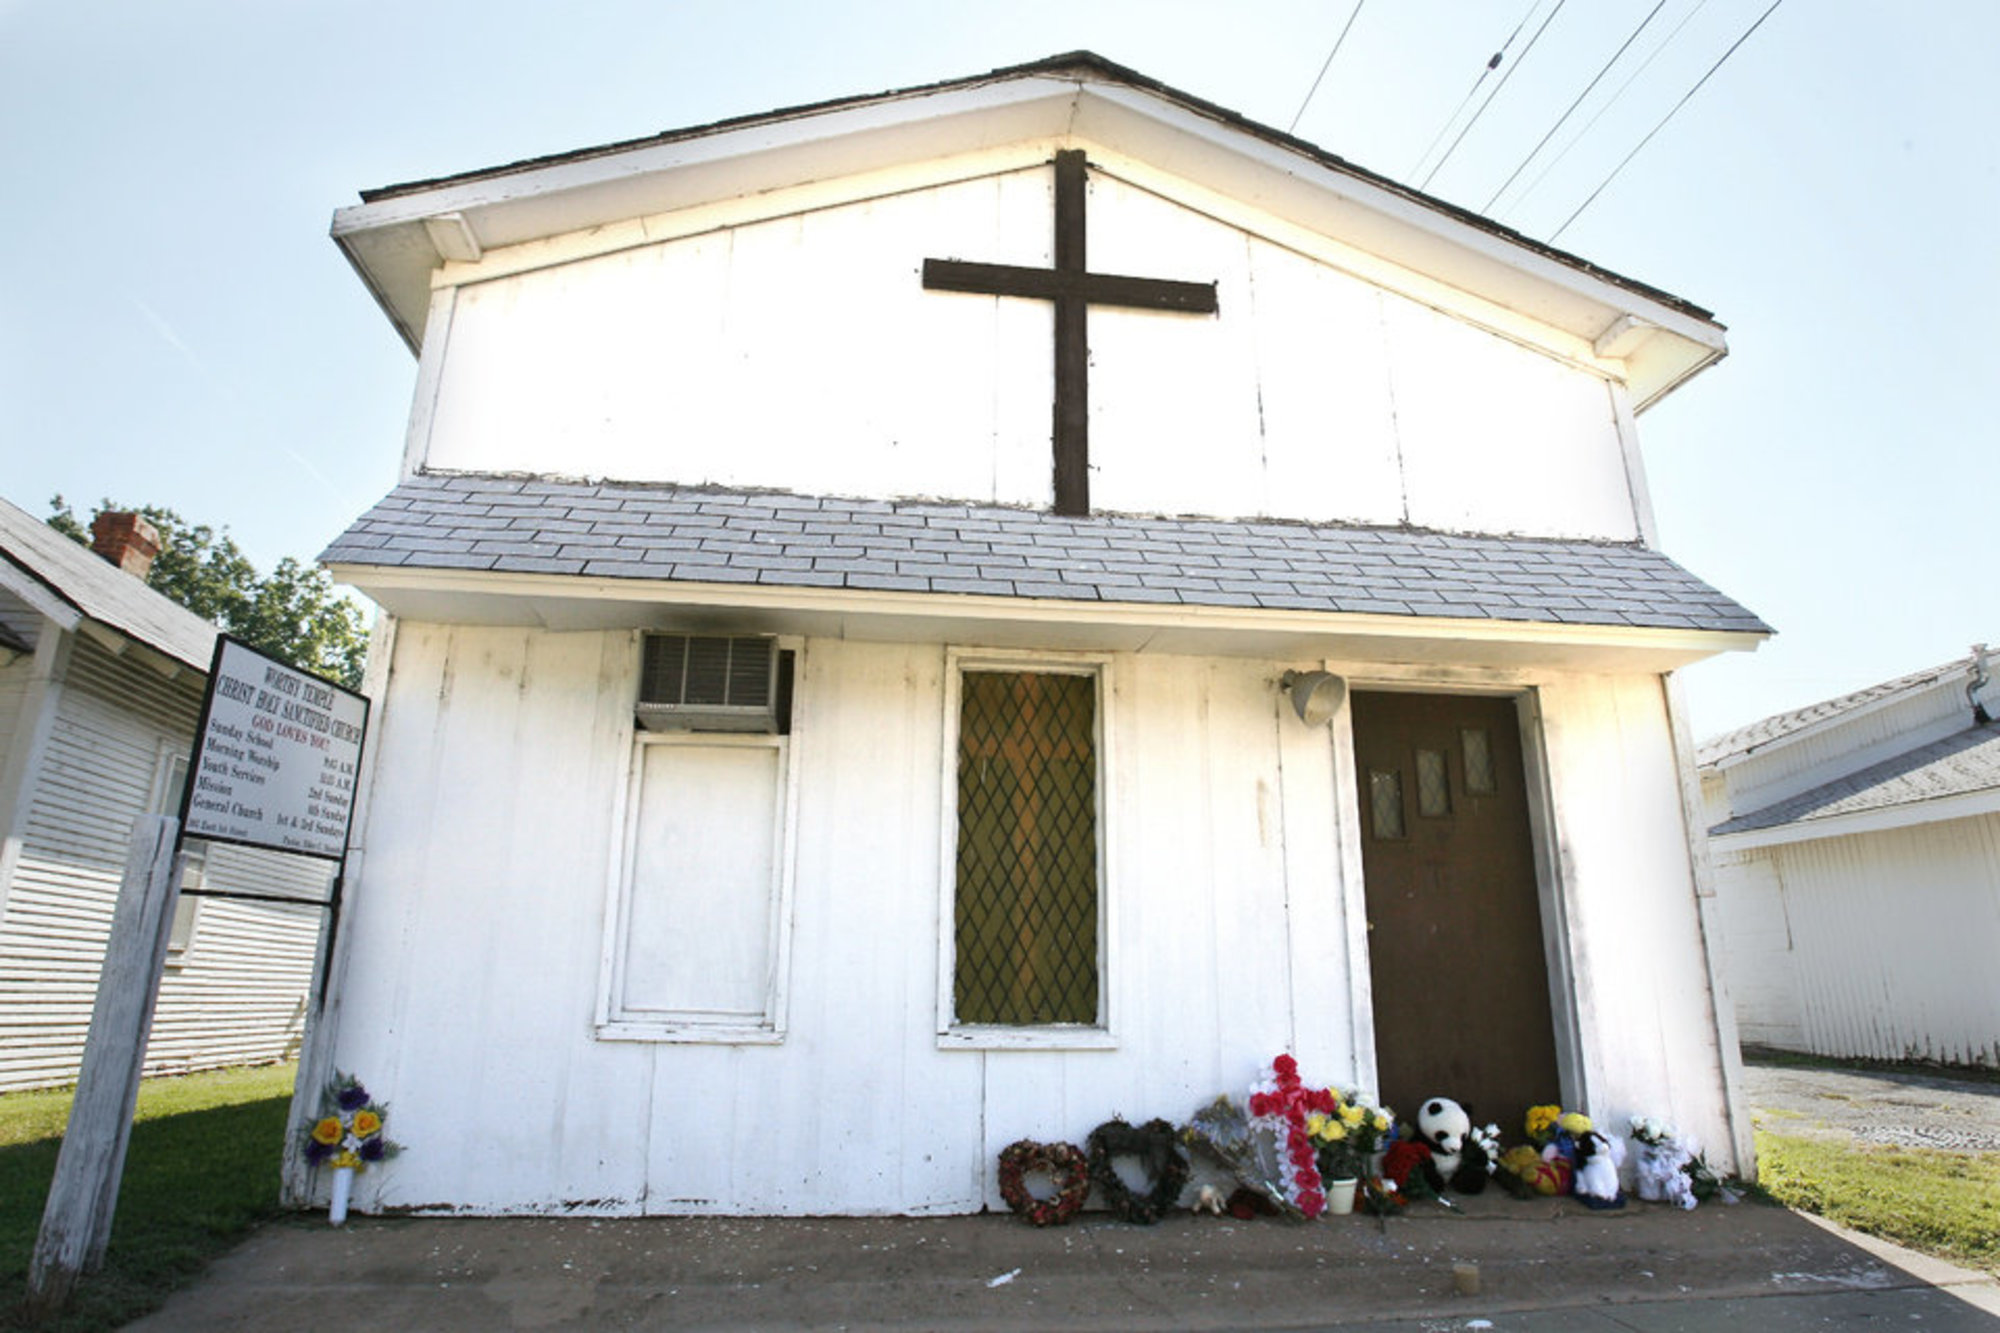 The small church where Rev. Daniels was pastor: Worthy Temple Christ Holy Sanctified Church.  The church building was razed to the ground.